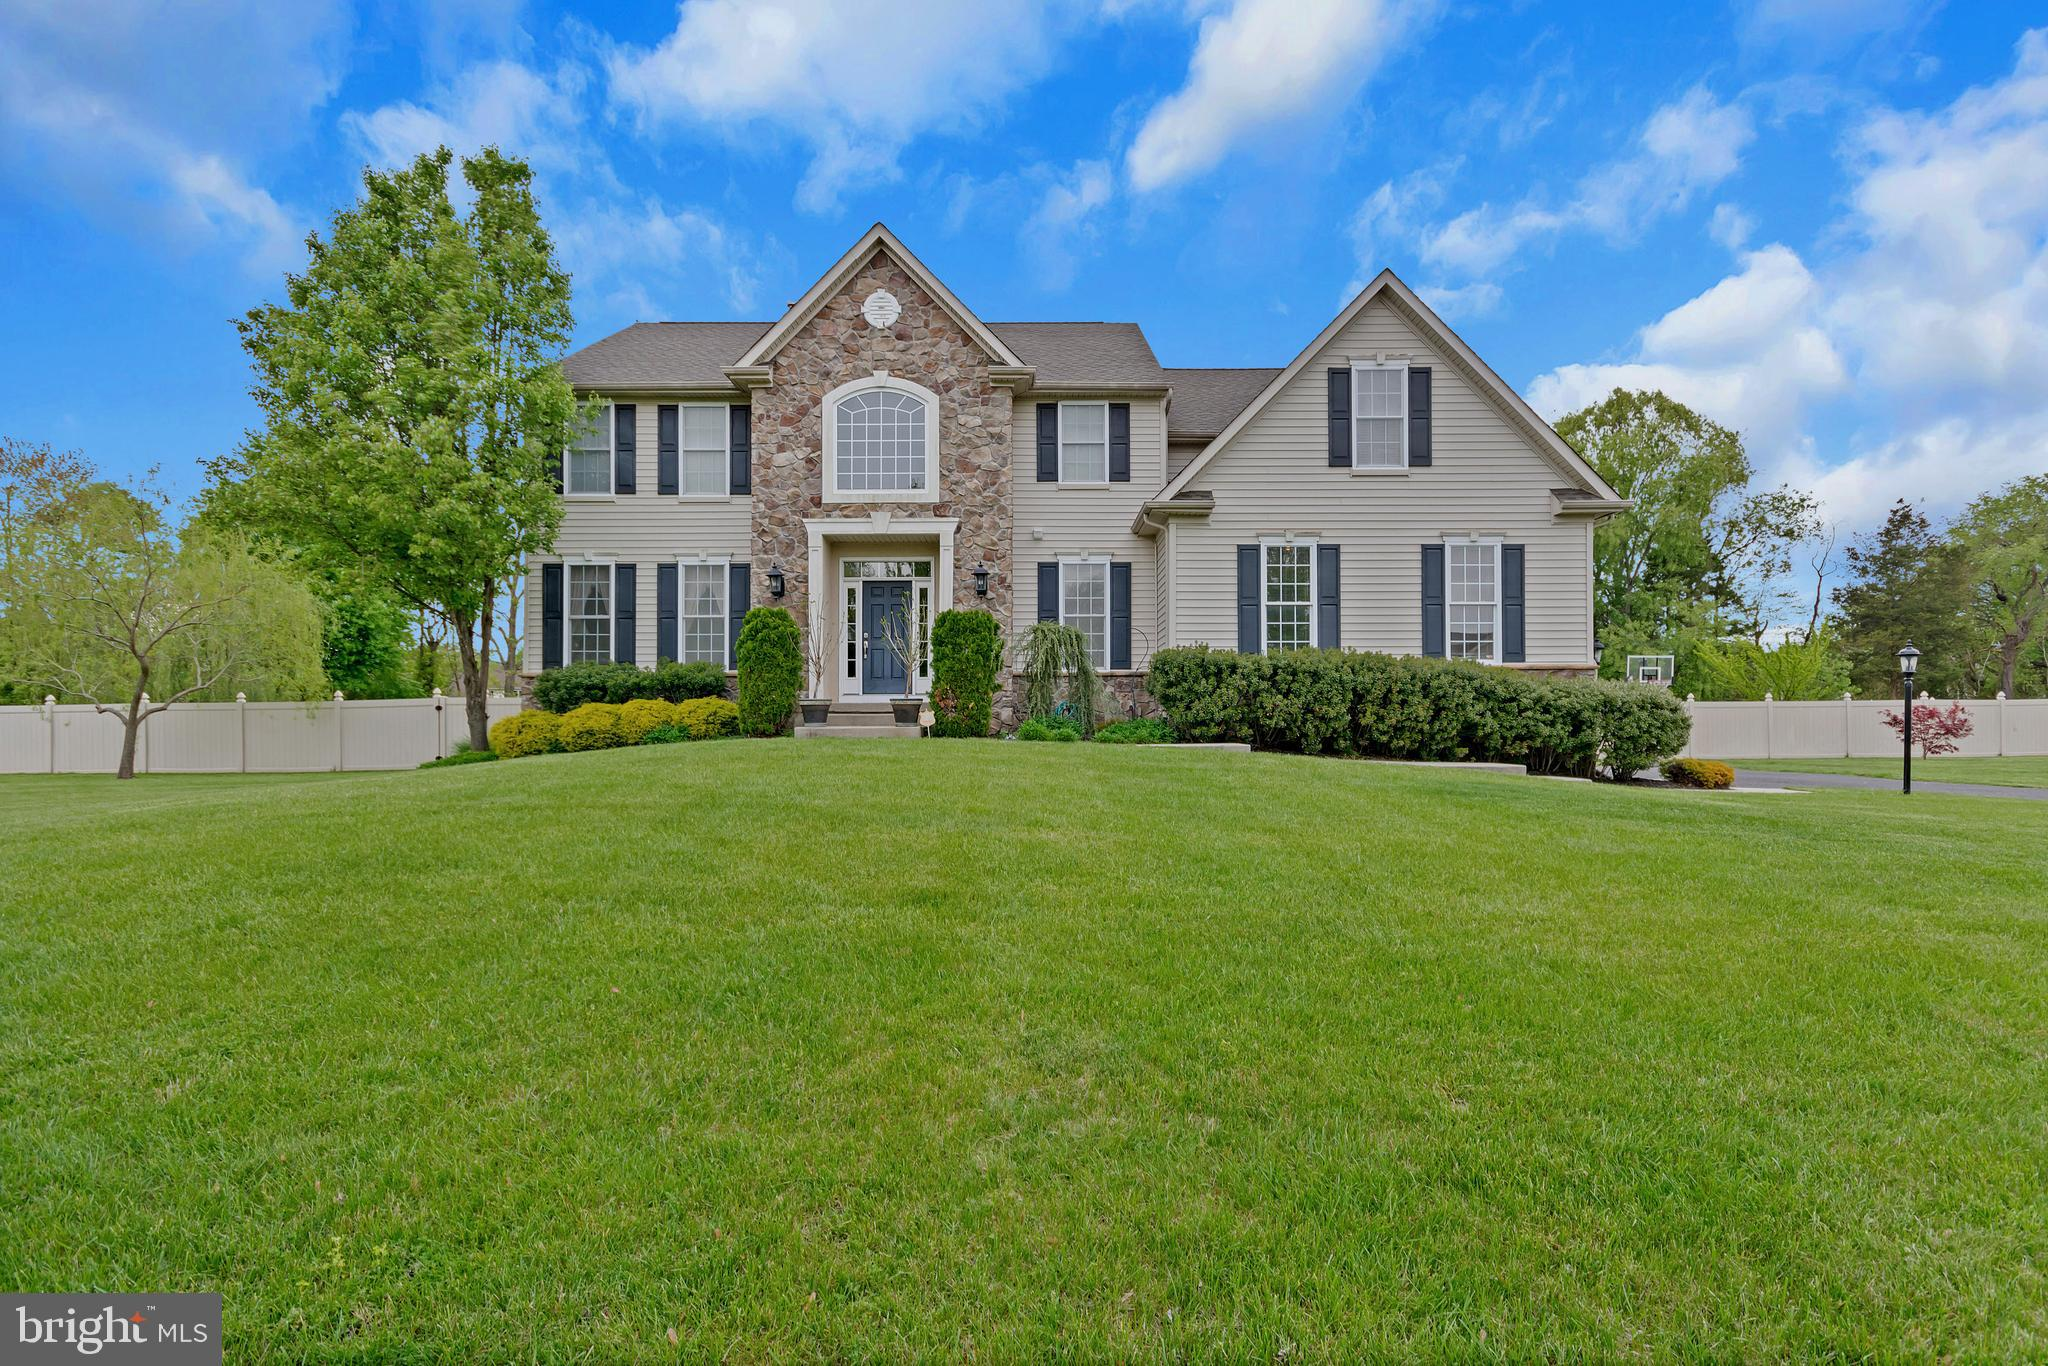 7 LAUREL WOOD COURT, LAUREL SPRINGS, NJ 08021